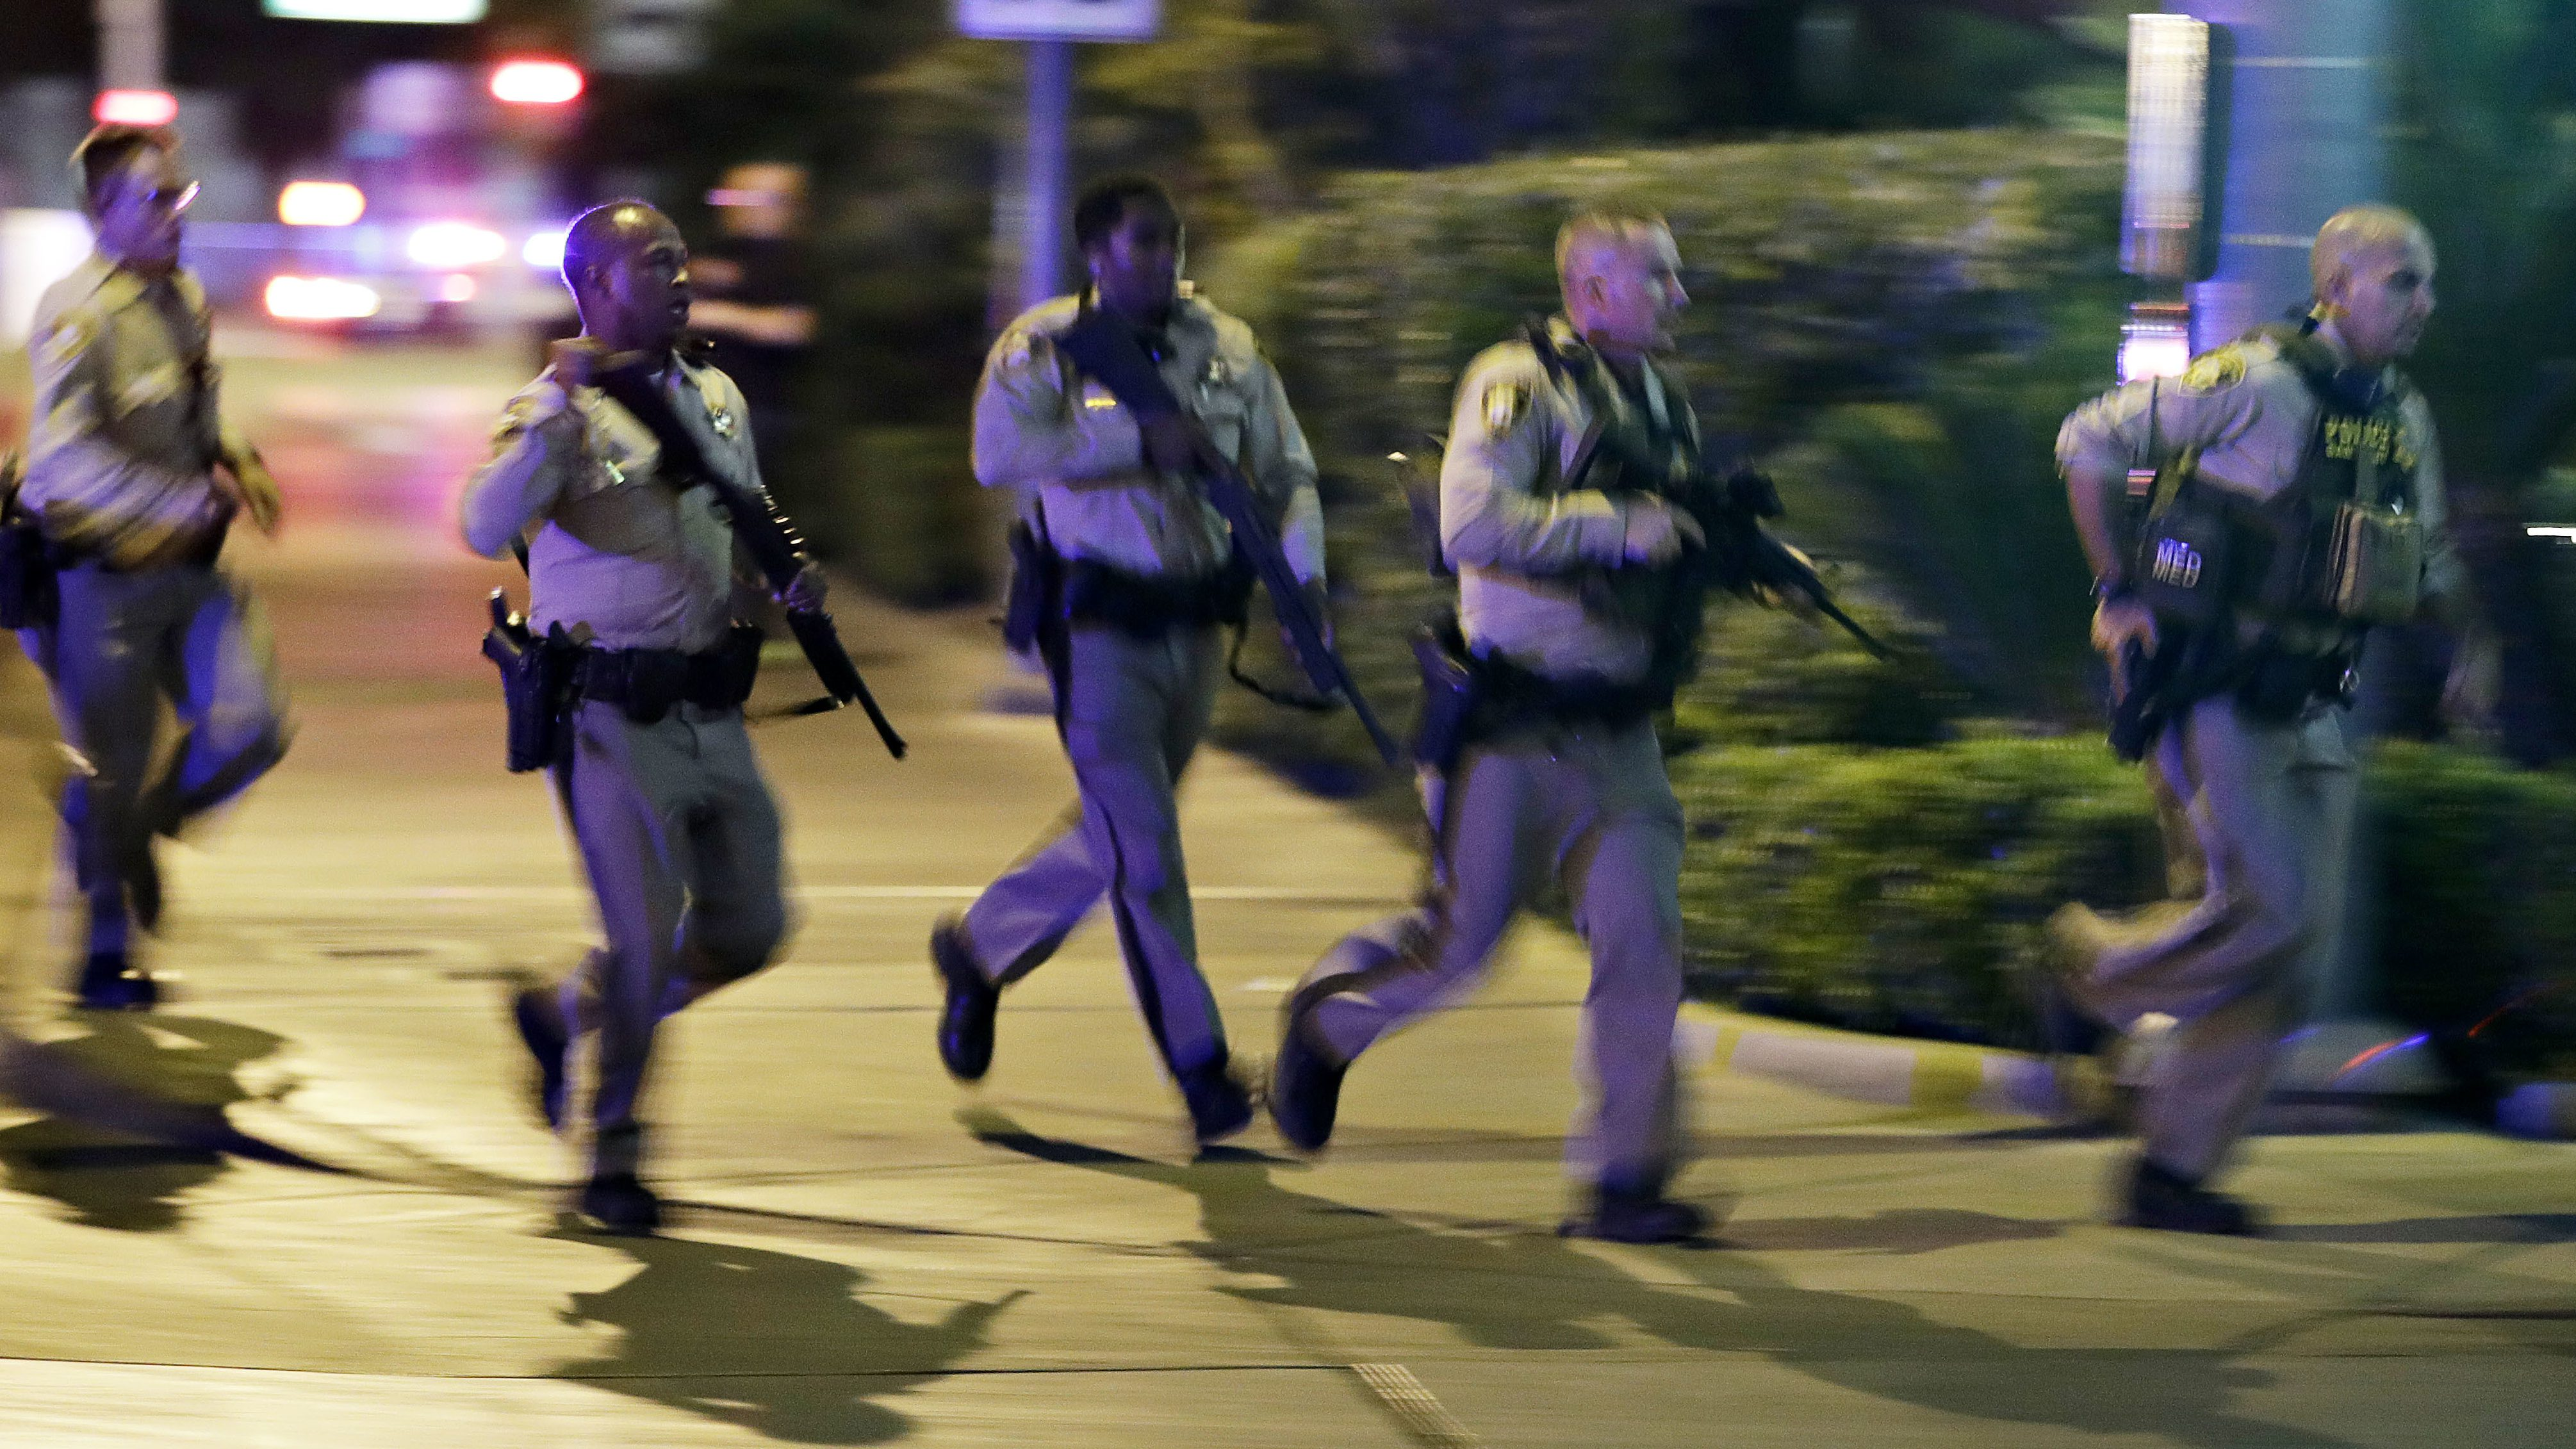 Police run to cover at the scene of a shooting near the Mandalay Bay resort and casino on the Las Vegas Strip